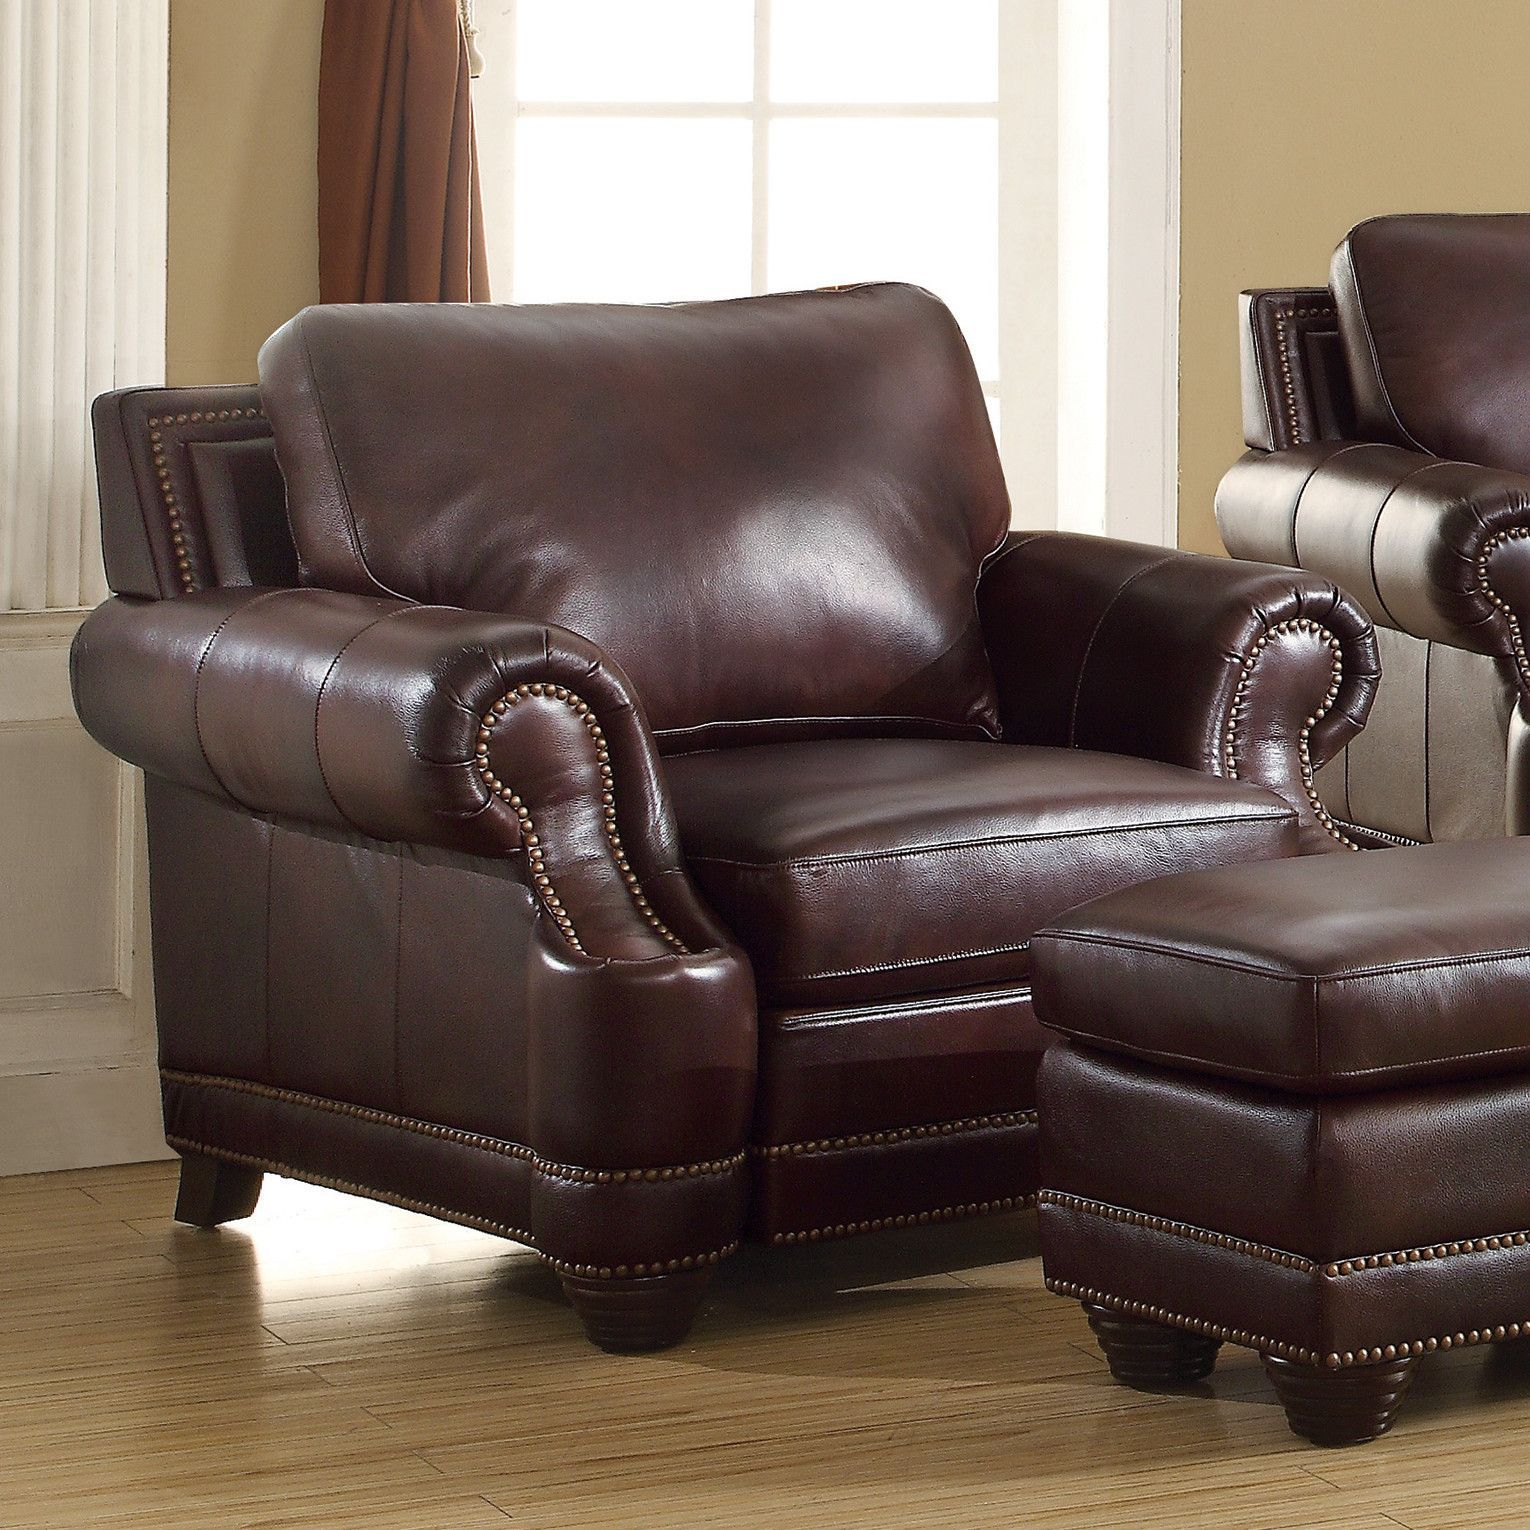 Heywood armchair and ottoman brown leather chairs chair